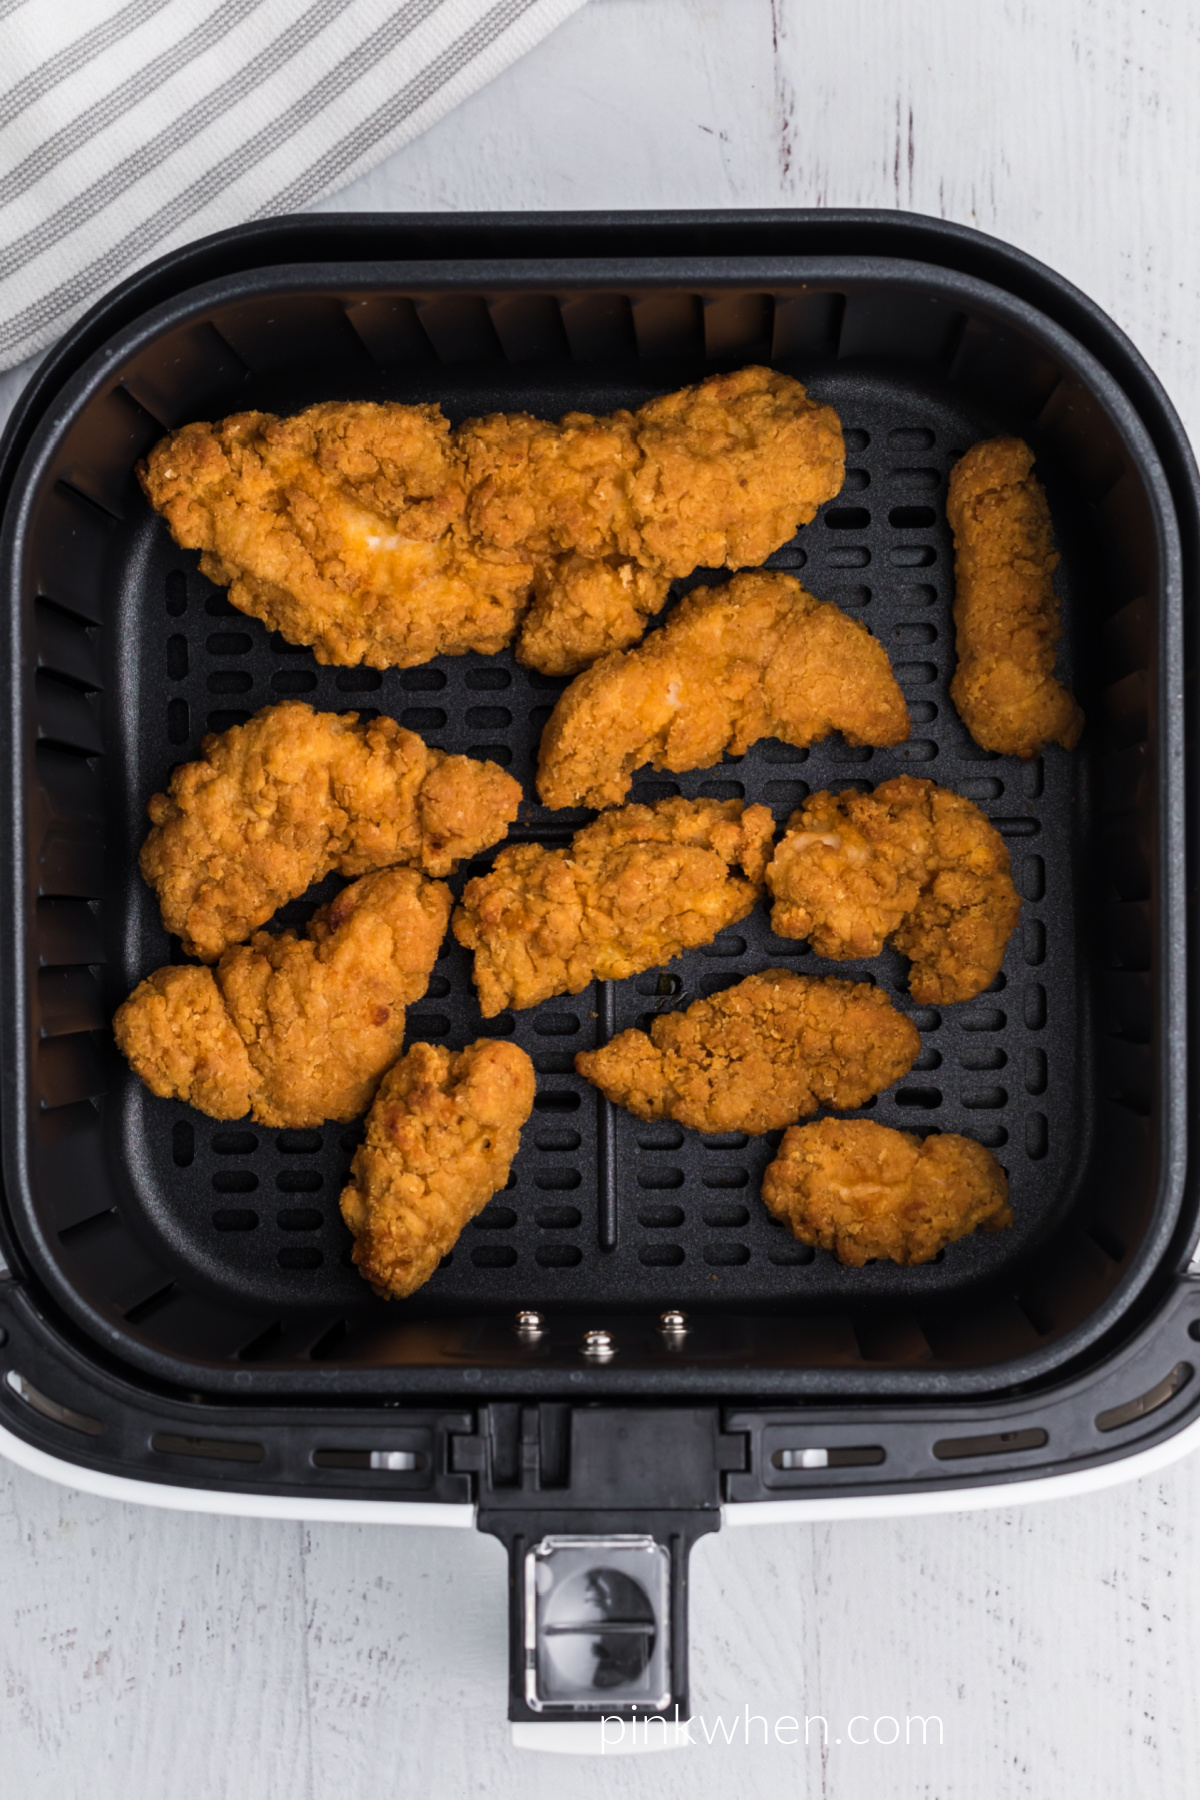 chicken strips fully cooked and in the basket of the air fryer, ready to serve.